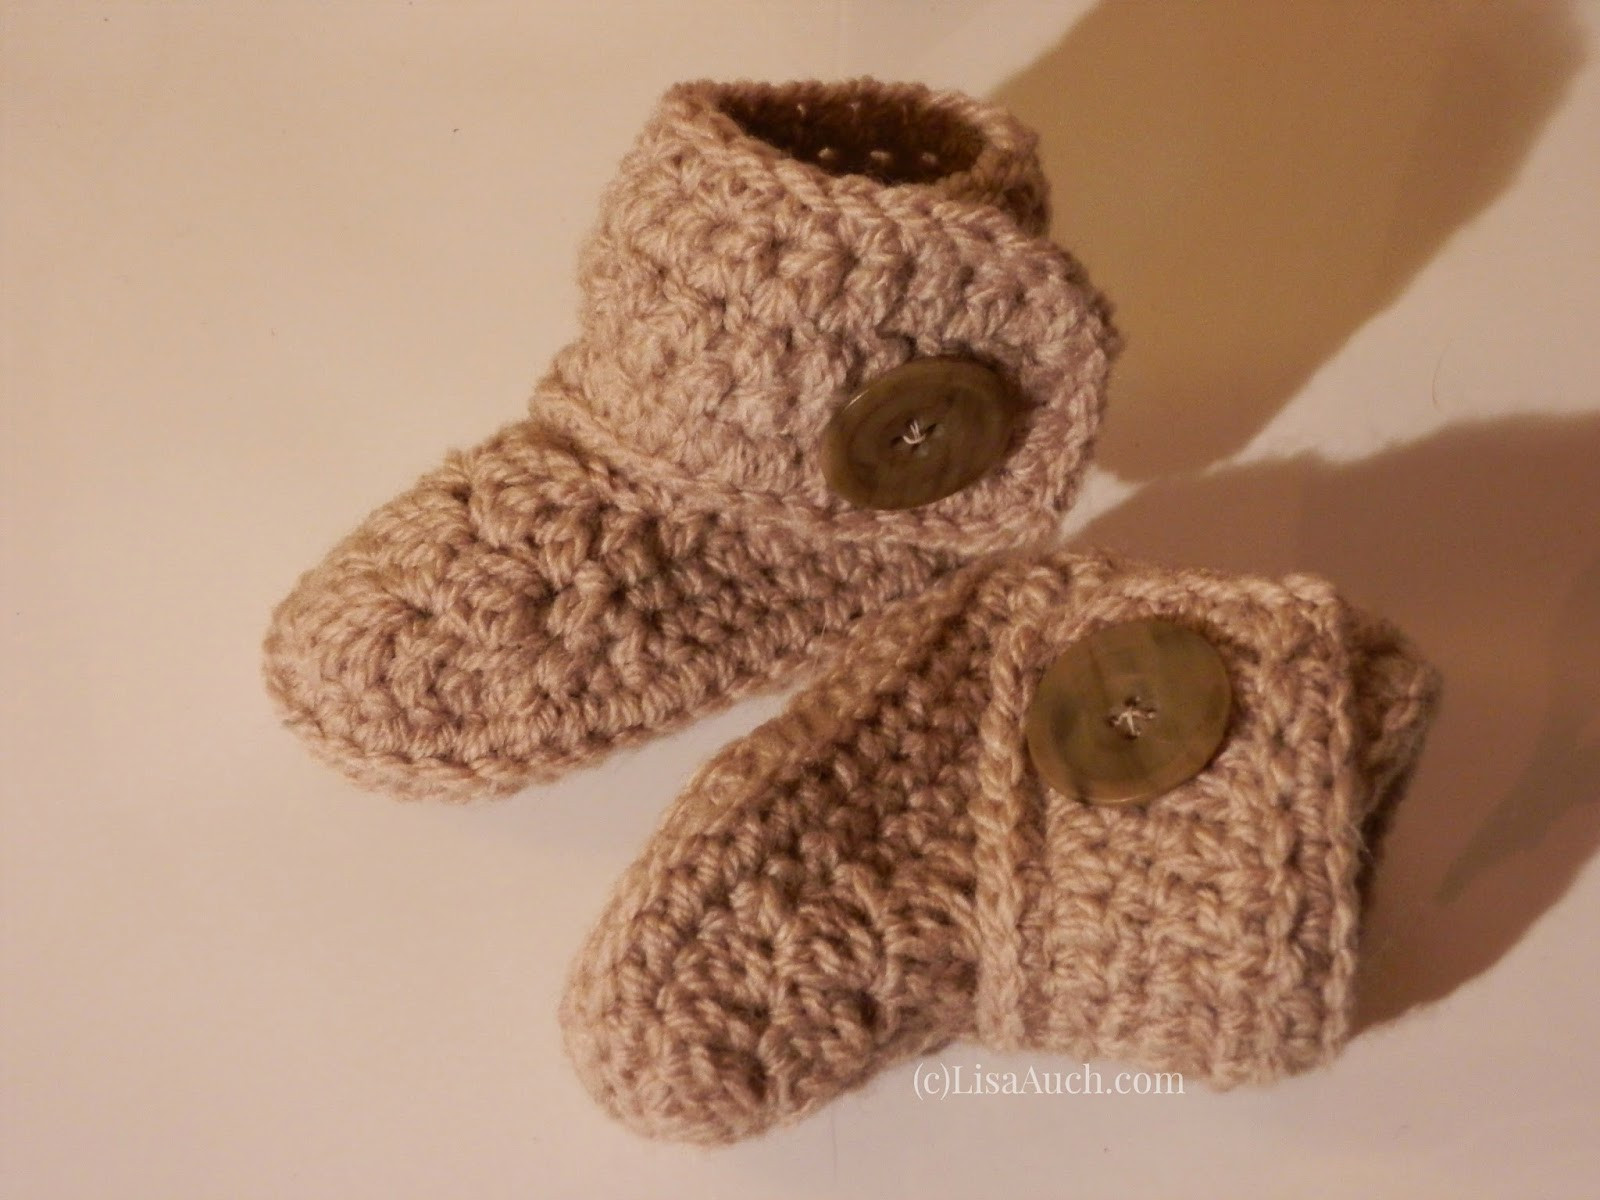 Crochet for Baby Boy Free Patterns Inspirational Free Crochet Patterns Baby Booties Of Beautiful 40 Ideas Crochet for Baby Boy Free Patterns